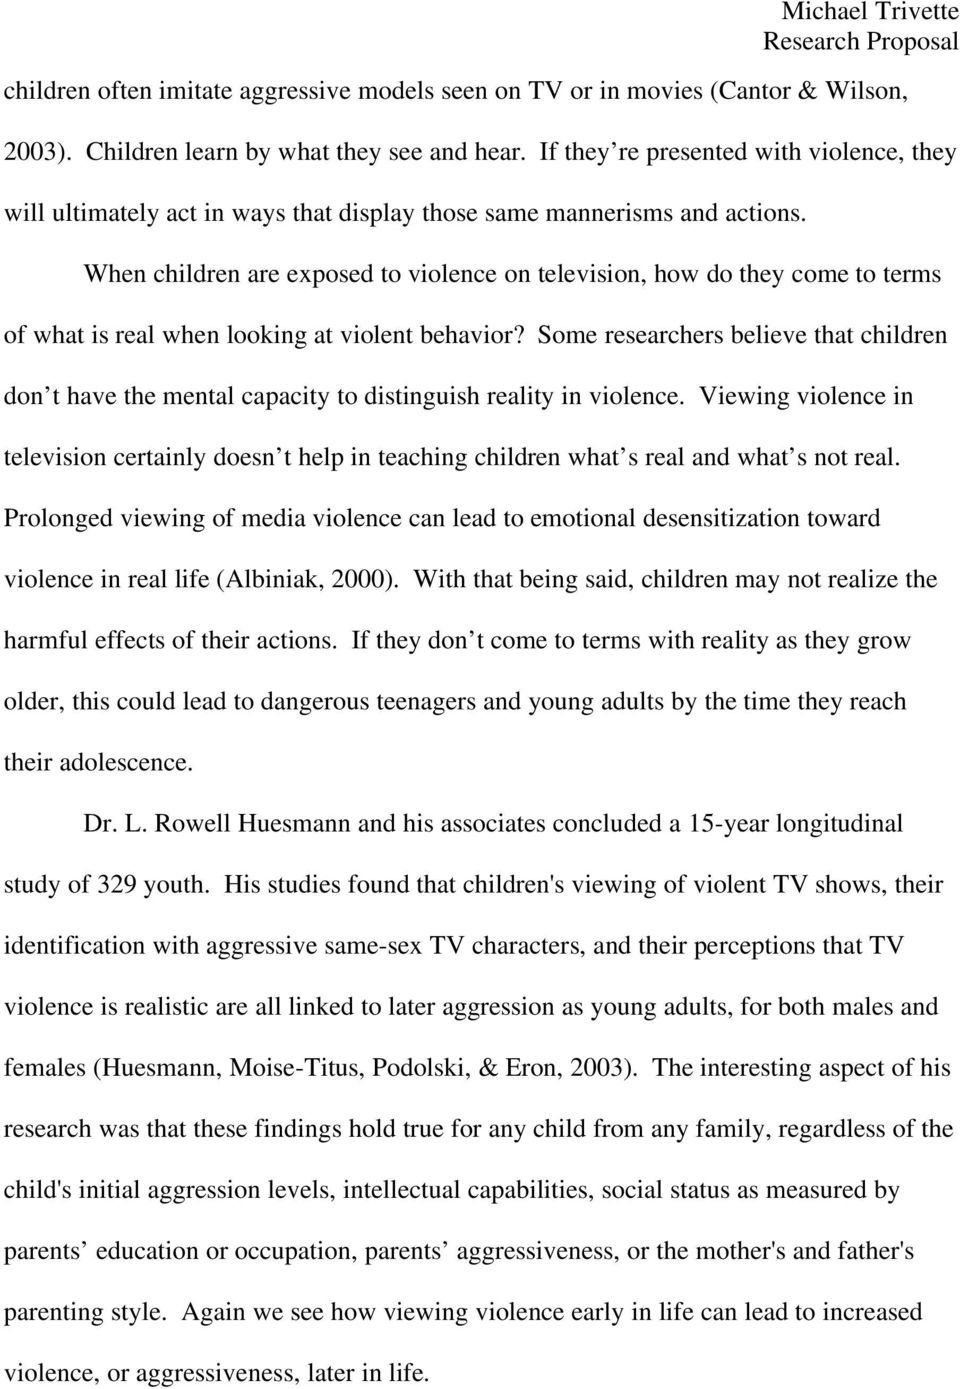 When children are exposed to violence on television, how do they come to terms of what is real when looking at violent behavior?